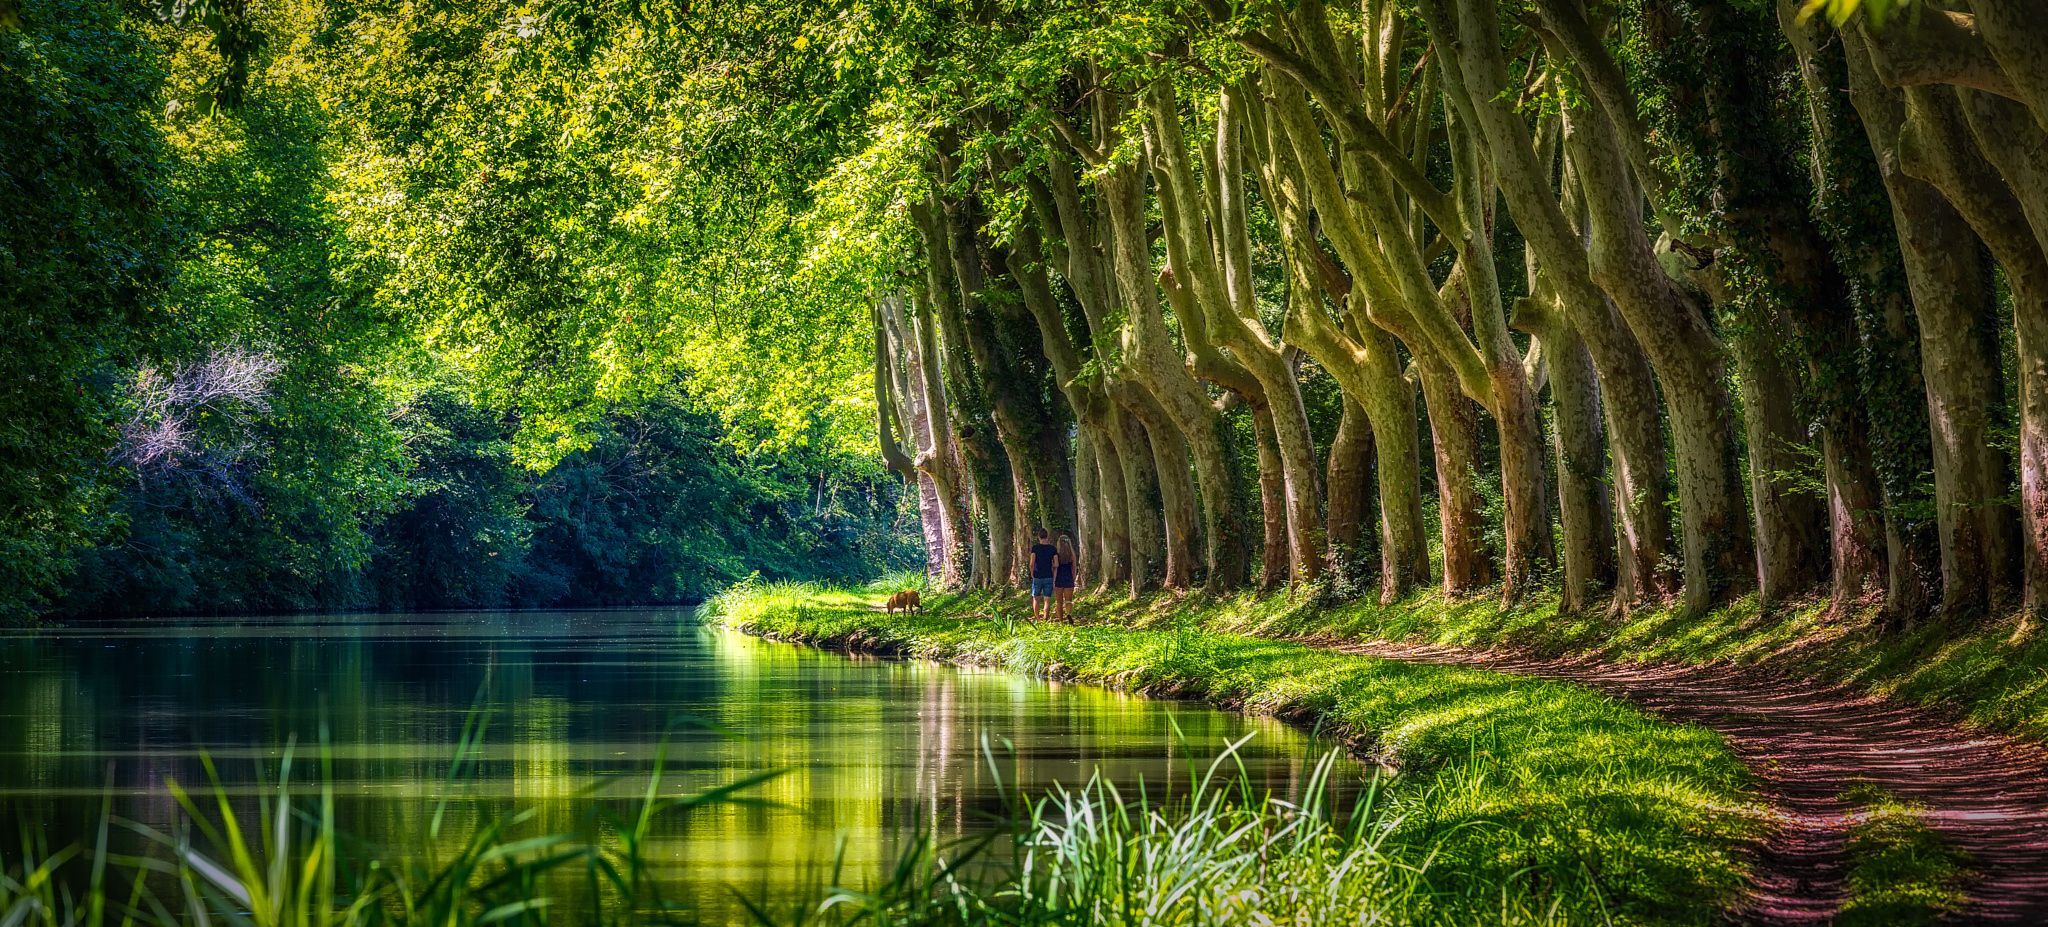 Fotografía Walking the Dog por Timm Green en 500px Canal du Midi, Francia